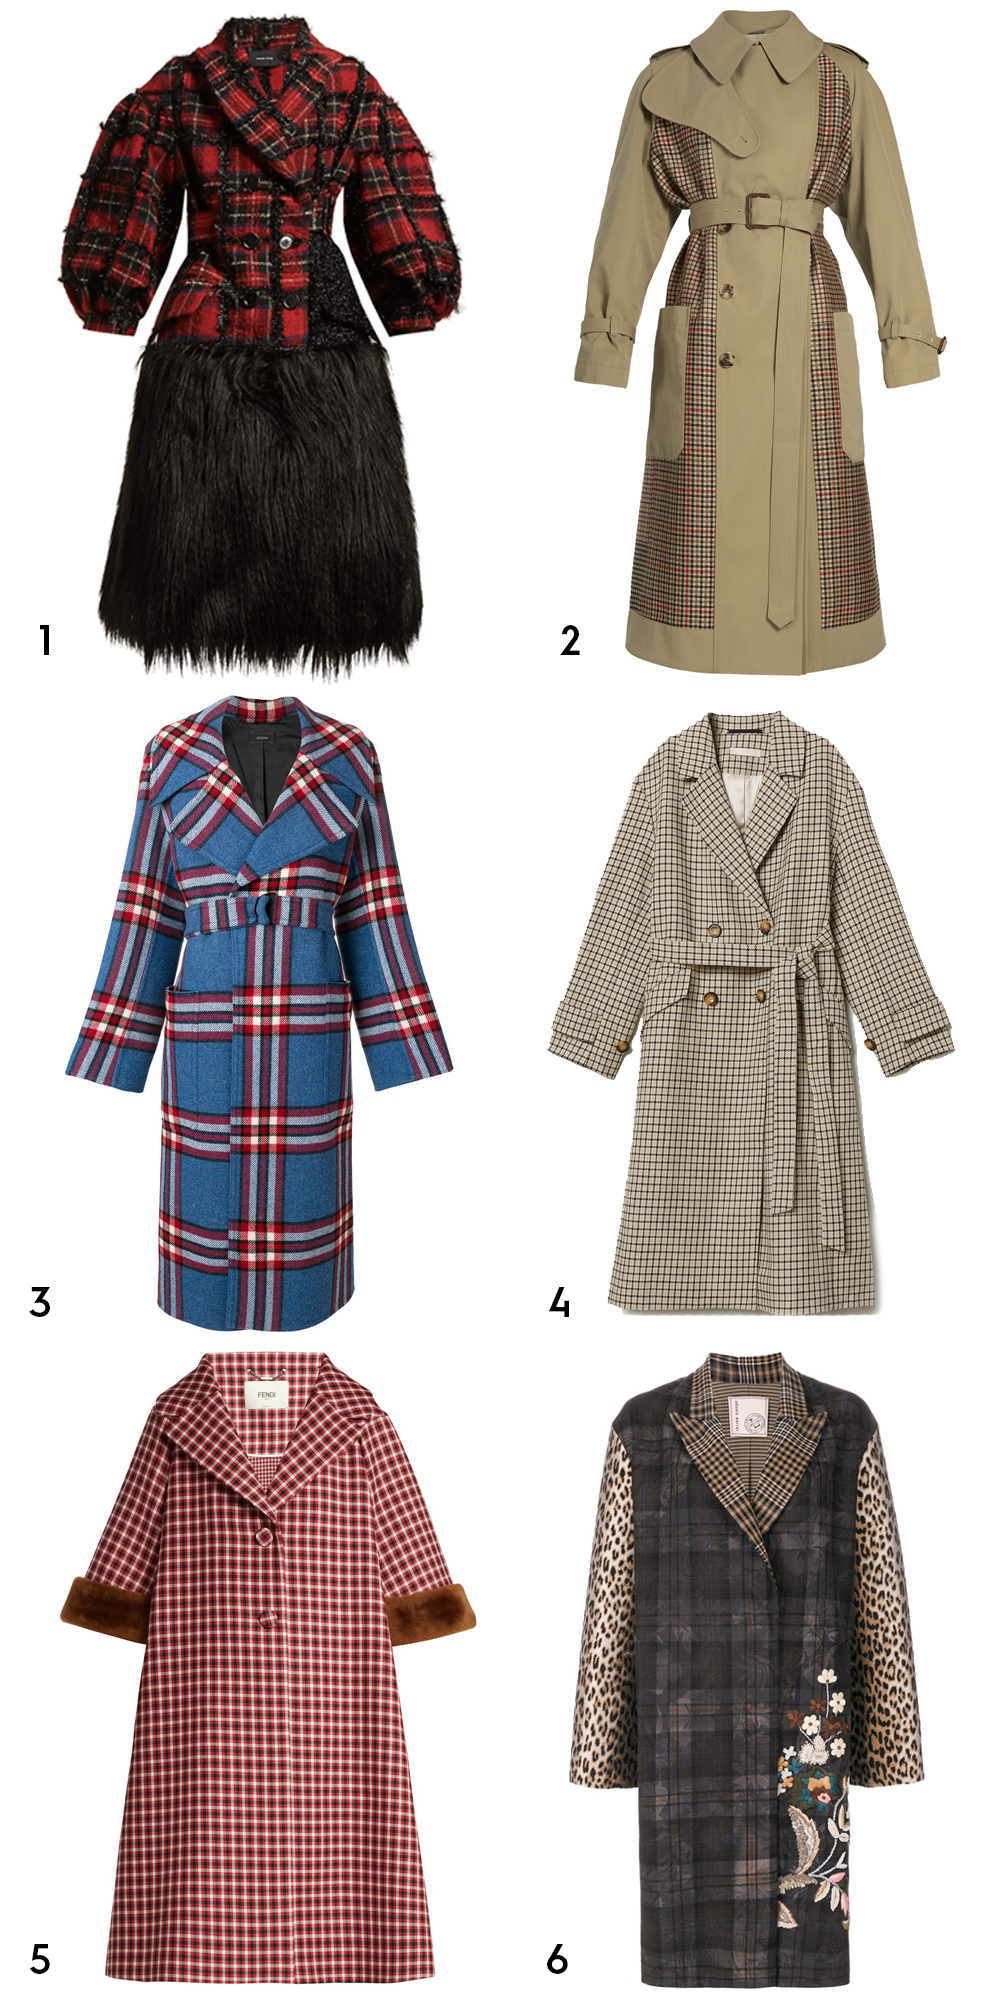 1Checked tweed coat by Simone Rocha, €2,688 at matchesfashion.com,2checked-back belted trench coat by Alexander McQueen, €2,446 at matchesfashion.com,3military check coat by Joseph, €1,195 at farfetch.com,4double-breasted coat, €99 at hm.com5shearling-trimmed checked wool coat by Fendi, €3,900 at matchesfashion.com,6floral embroidery checked coat by Antonio Marras, €1,500 at farfetch.com